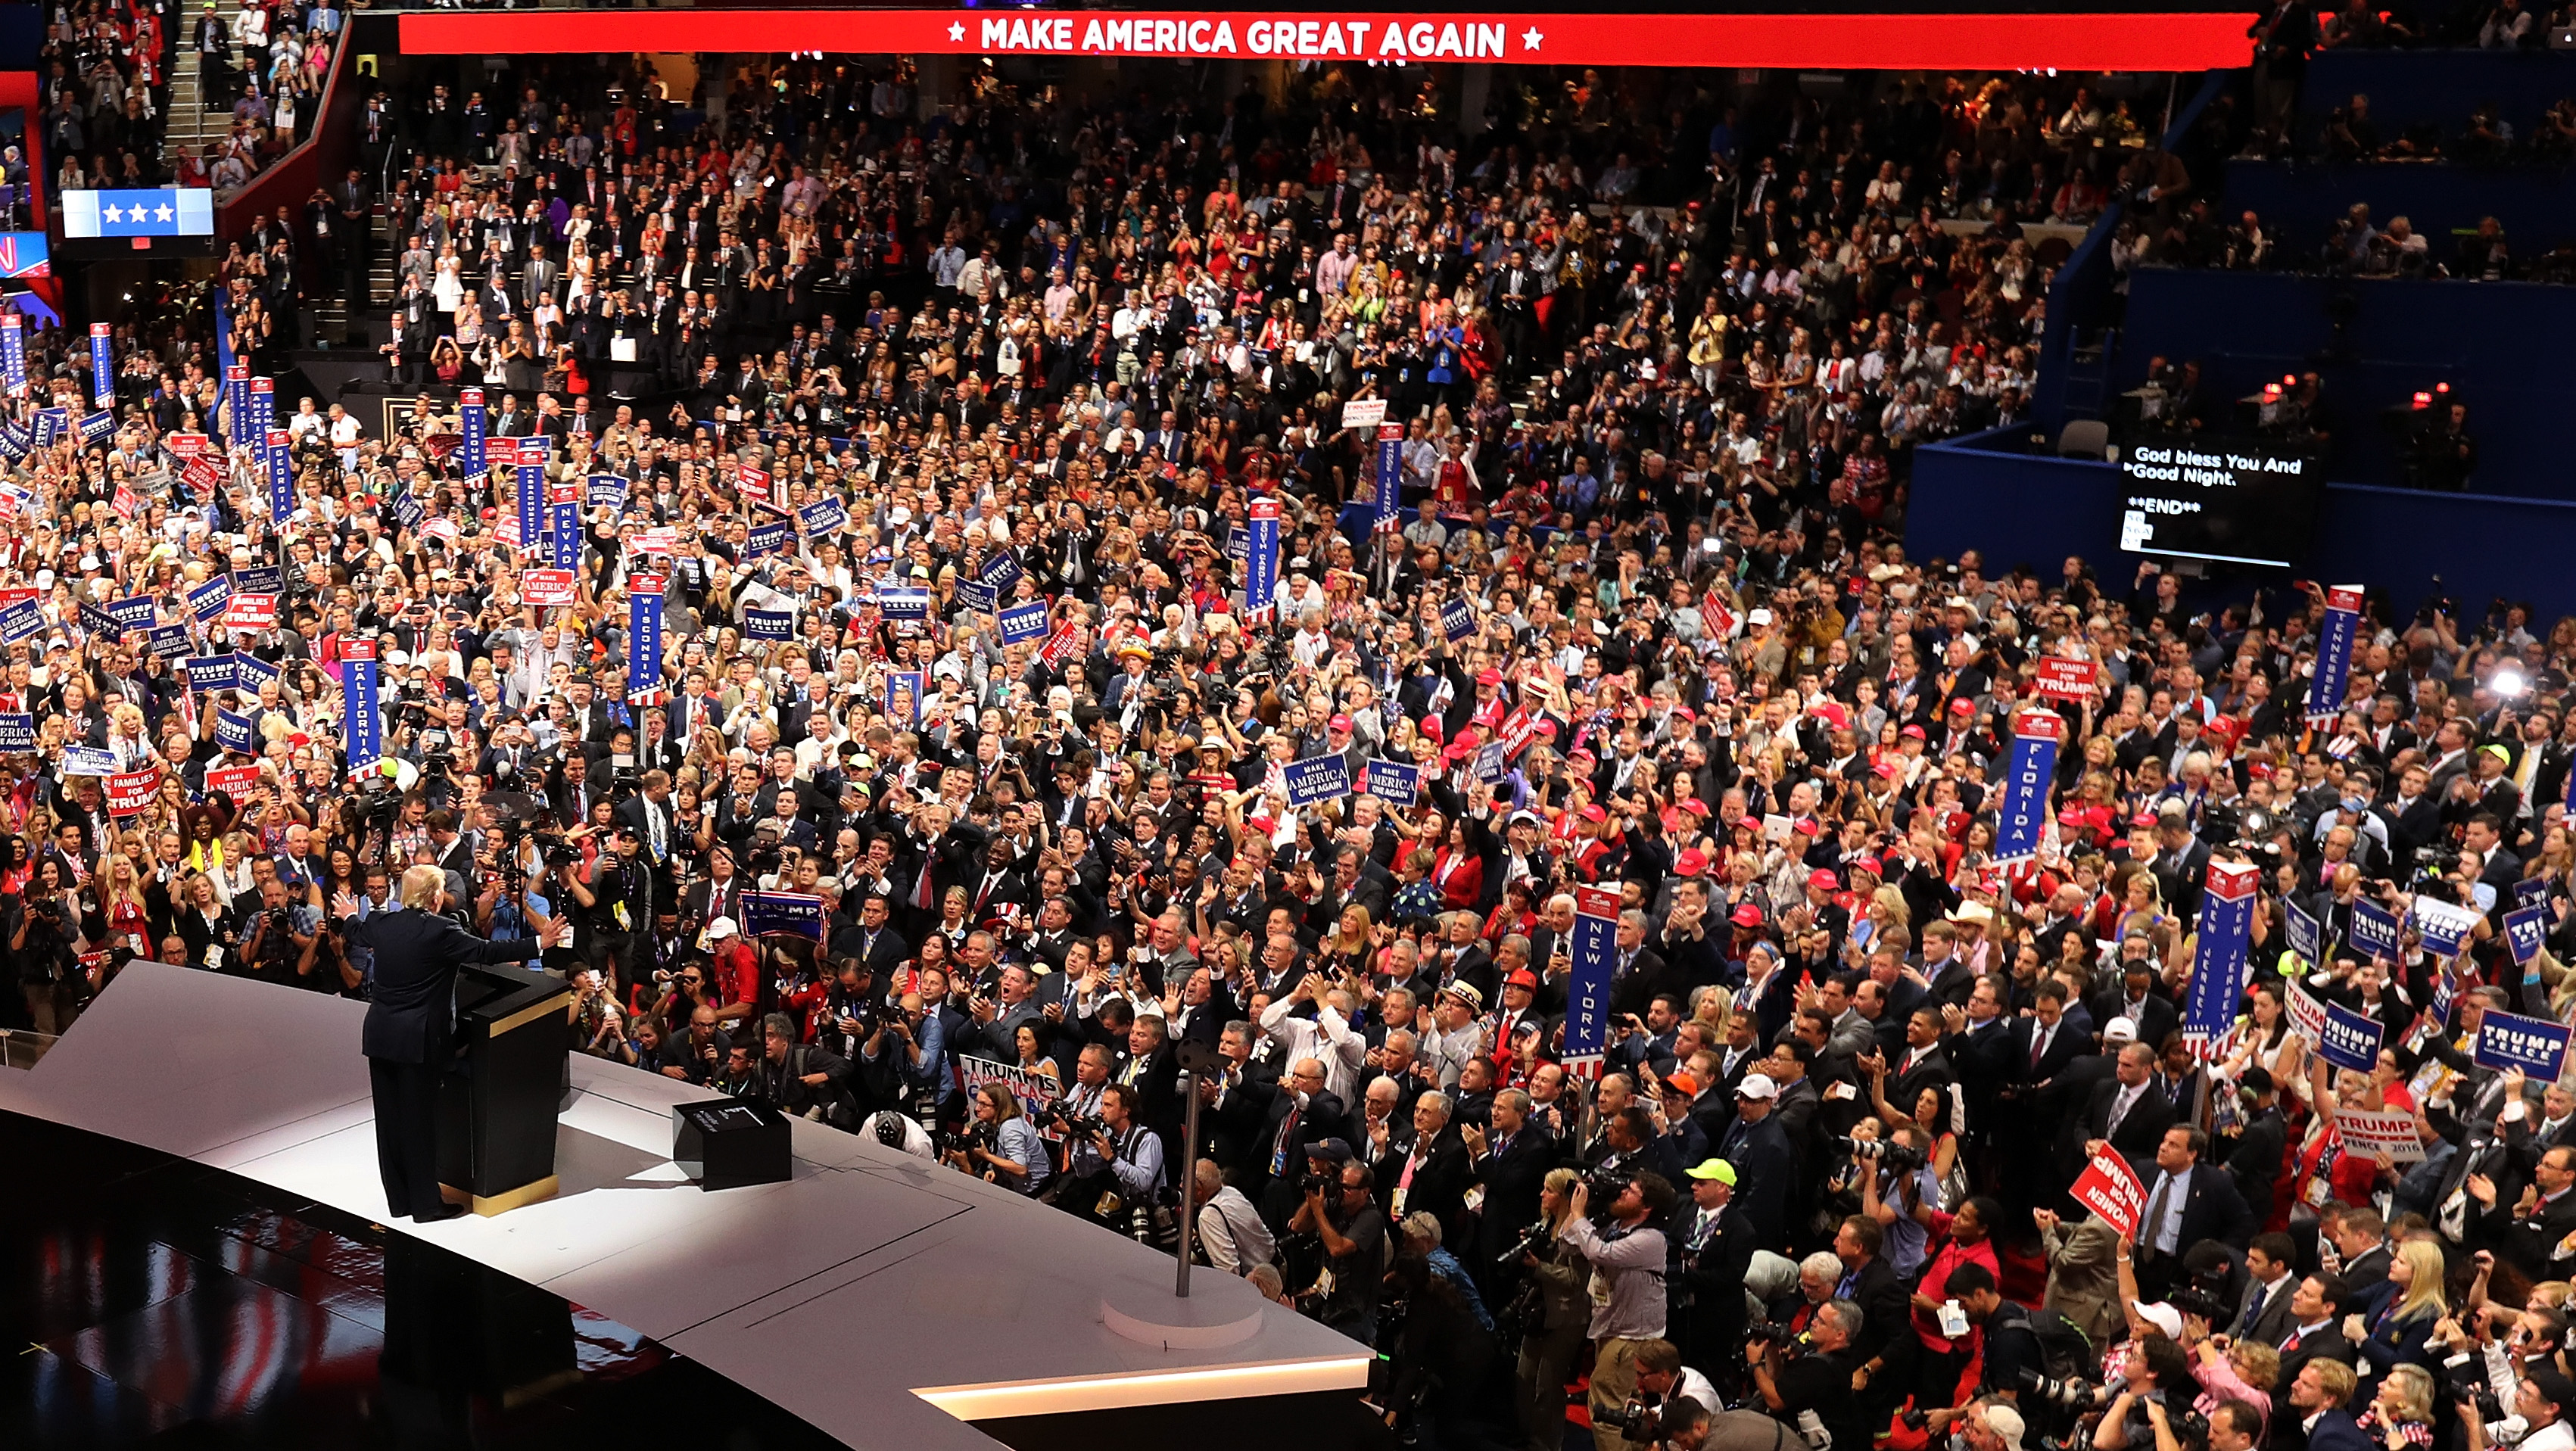 CLEVELAND, OH - JULY 21: Republican presidential candidate Donald Trump acknowledges the crowd at the end of the Republican National Convention on July 21, 2016 at the Quicken Loans Arena in Cleveland, Ohio. Republican presidential candidate Donald Trump received the number of votes needed to secure the party's nomination. An estimated 50,000 people are expected in Cleveland, including hundreds of protesters and members of the media. The four-day Republican National Convention kicked off on July 18. (Photo by Chip Somodevilla/Getty Images)